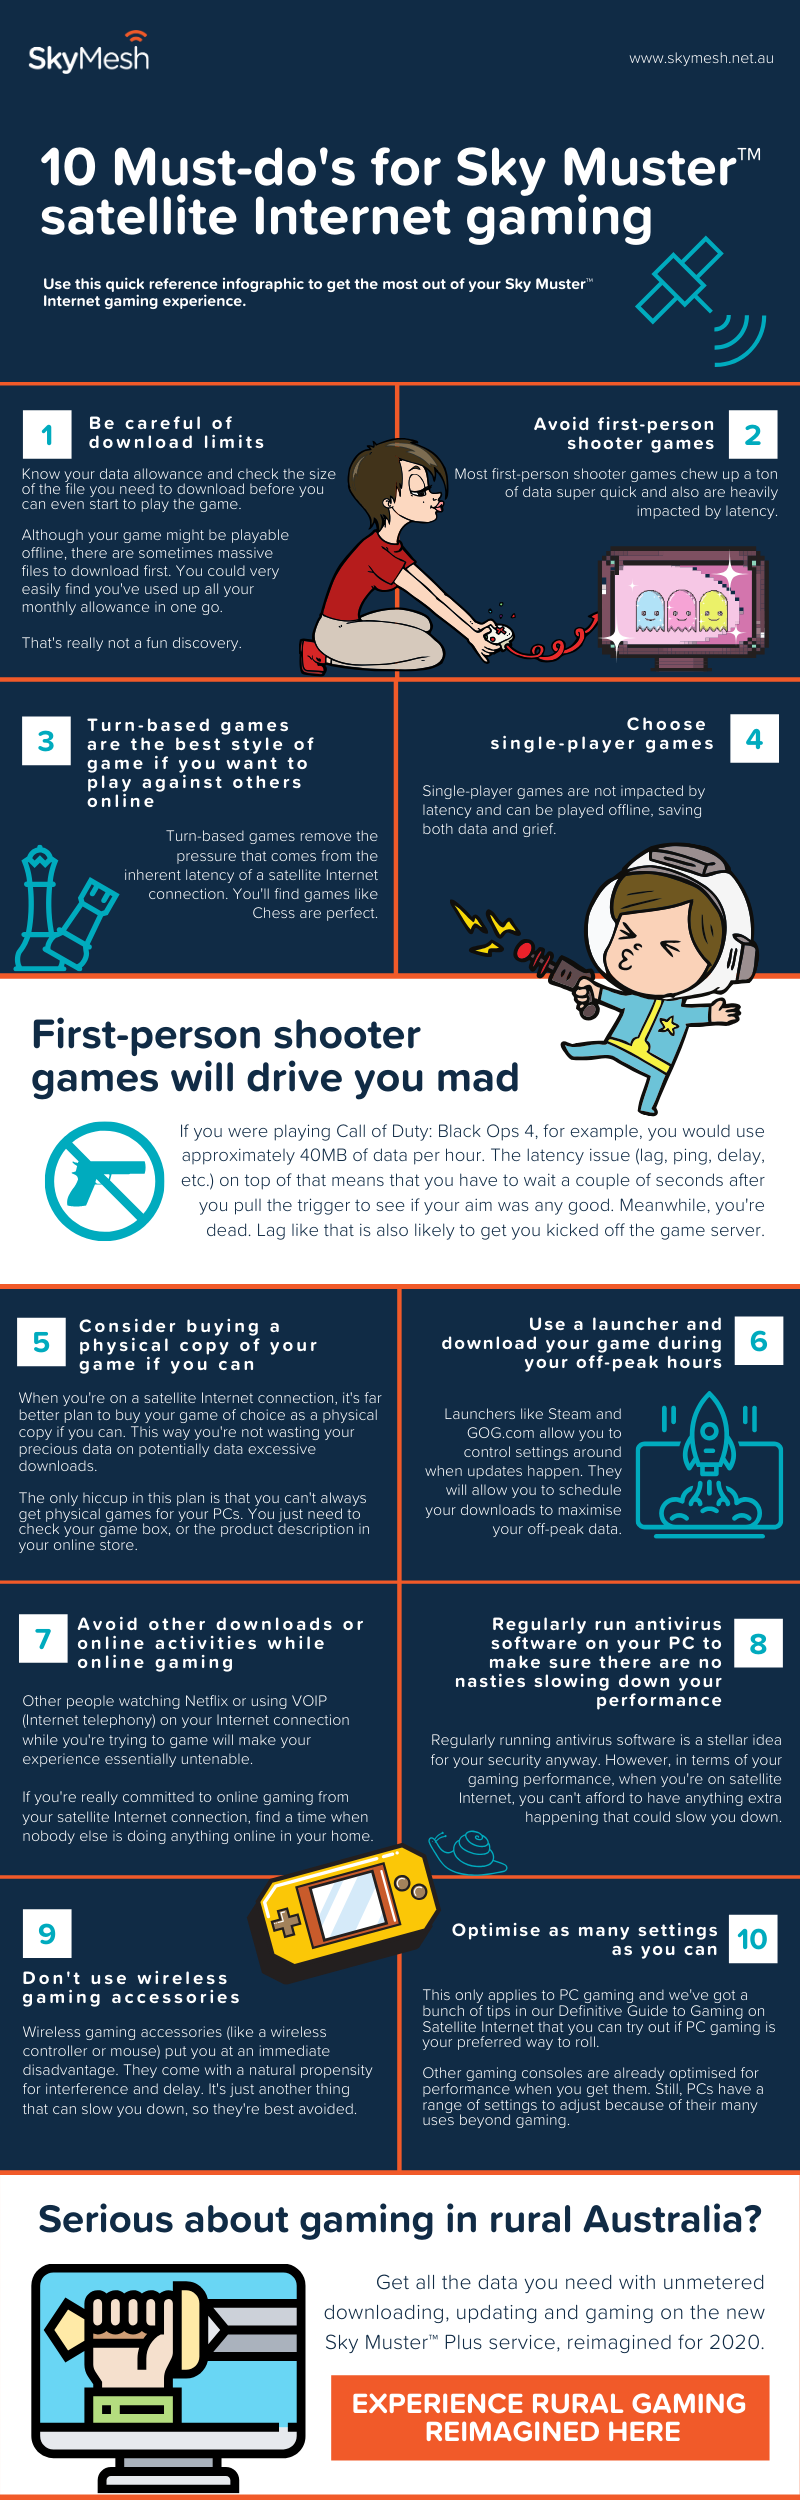 Sky Muster fact sheet - 10 must dos for gaming